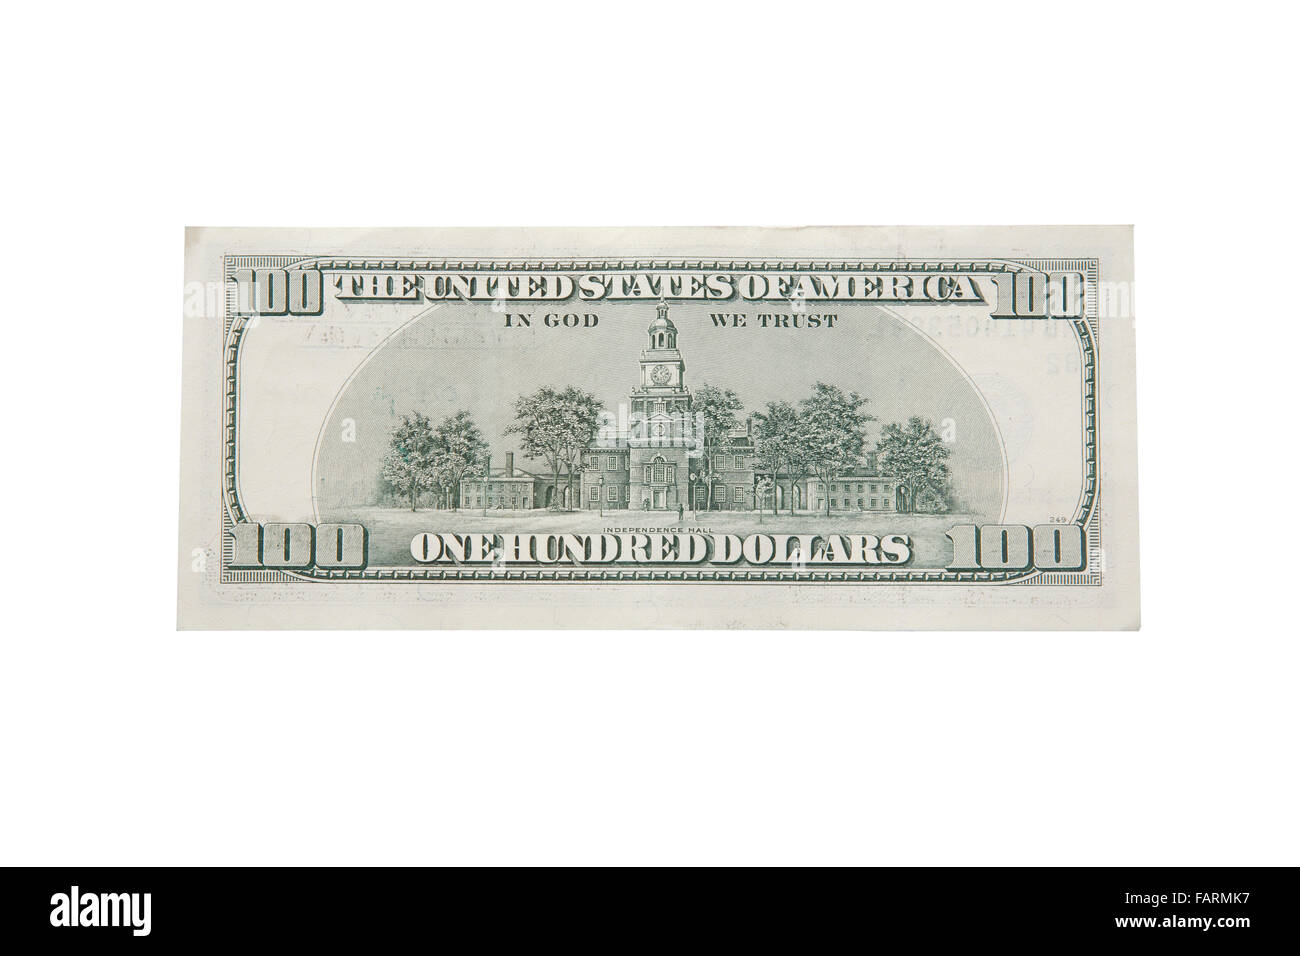 Back design of hundred dollar banknote,isolated on white with clipping path. - Stock Image